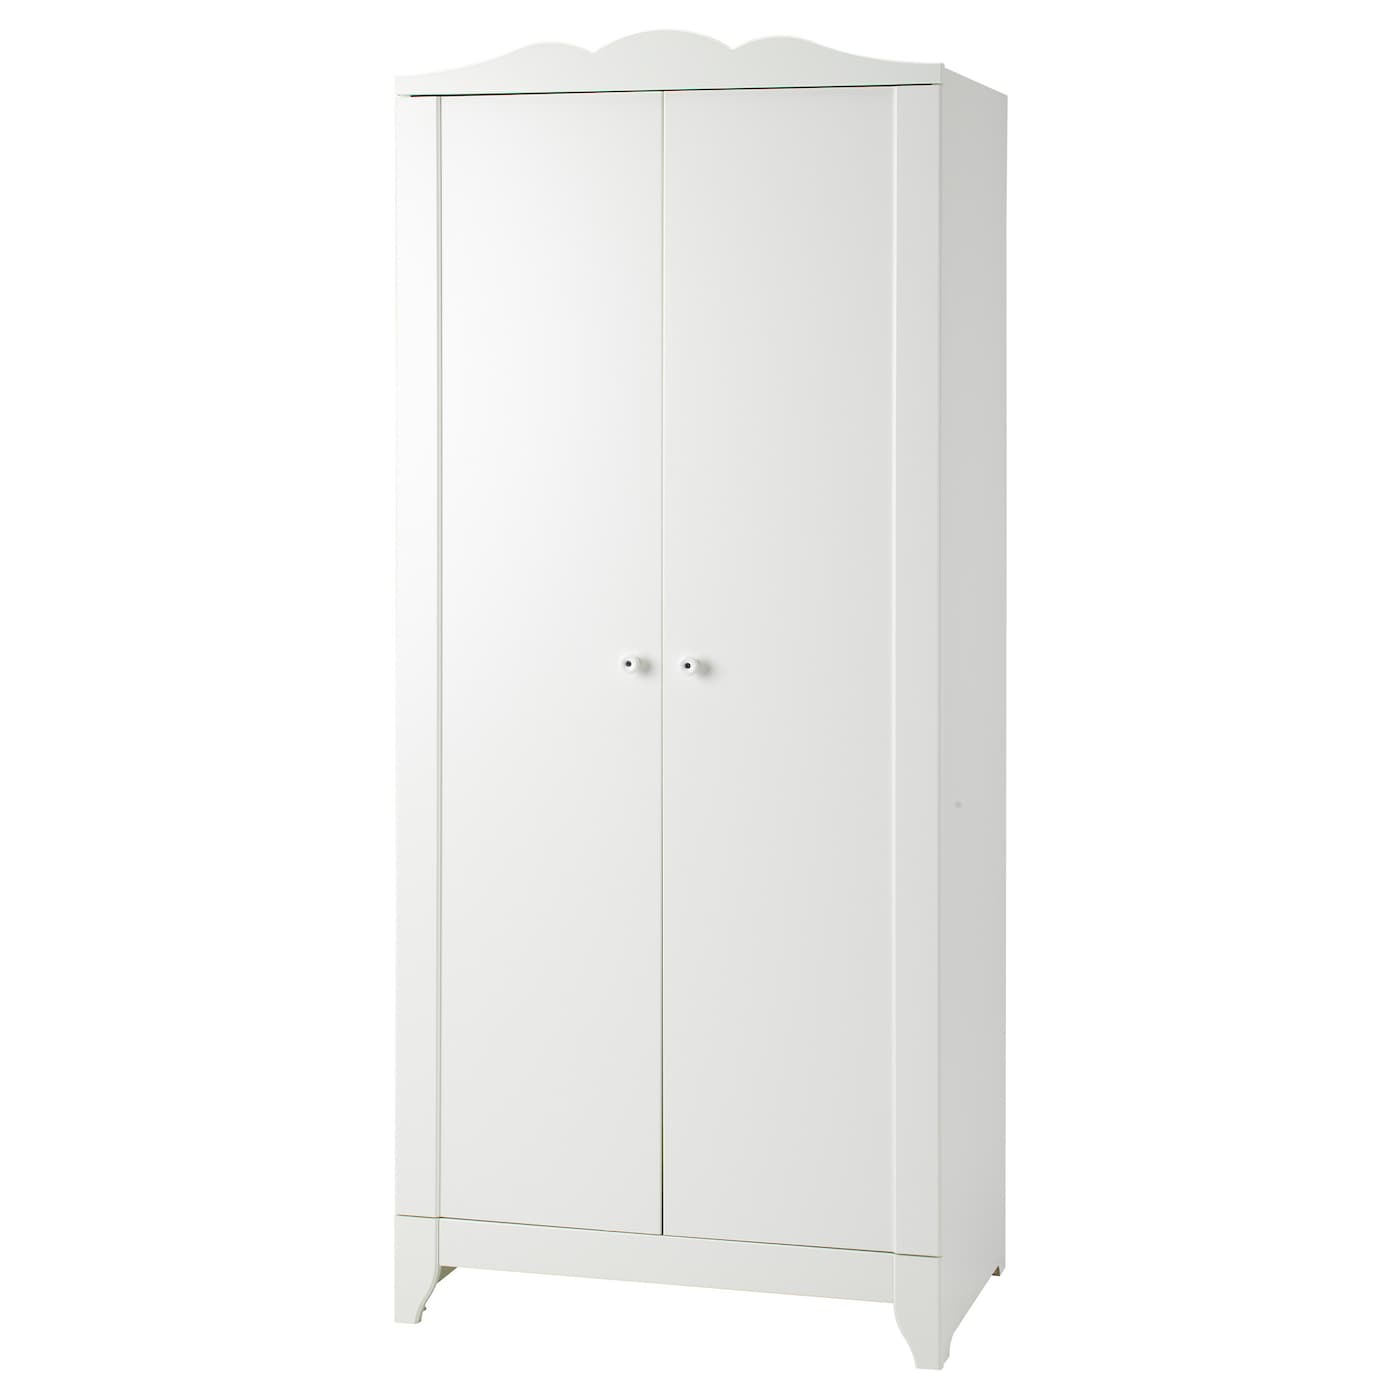 armoire m tallique ikea blanche id e inspirante pour la conception de la maison. Black Bedroom Furniture Sets. Home Design Ideas